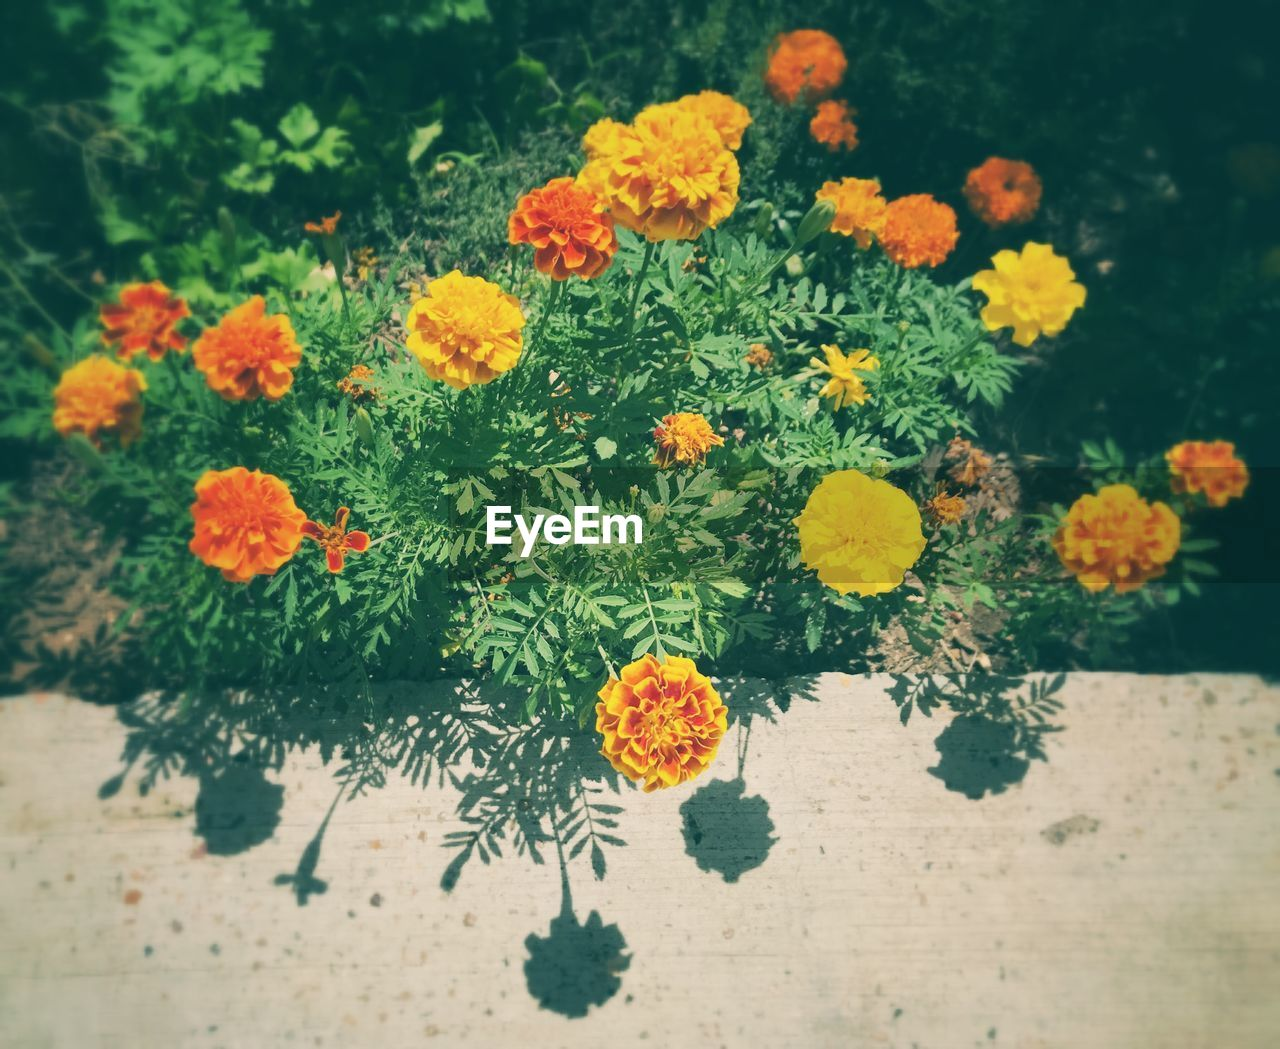 flower, plant, growth, nature, beauty in nature, fragility, freshness, no people, high angle view, petal, marigold, day, flower head, yellow, close-up, outdoors, blooming